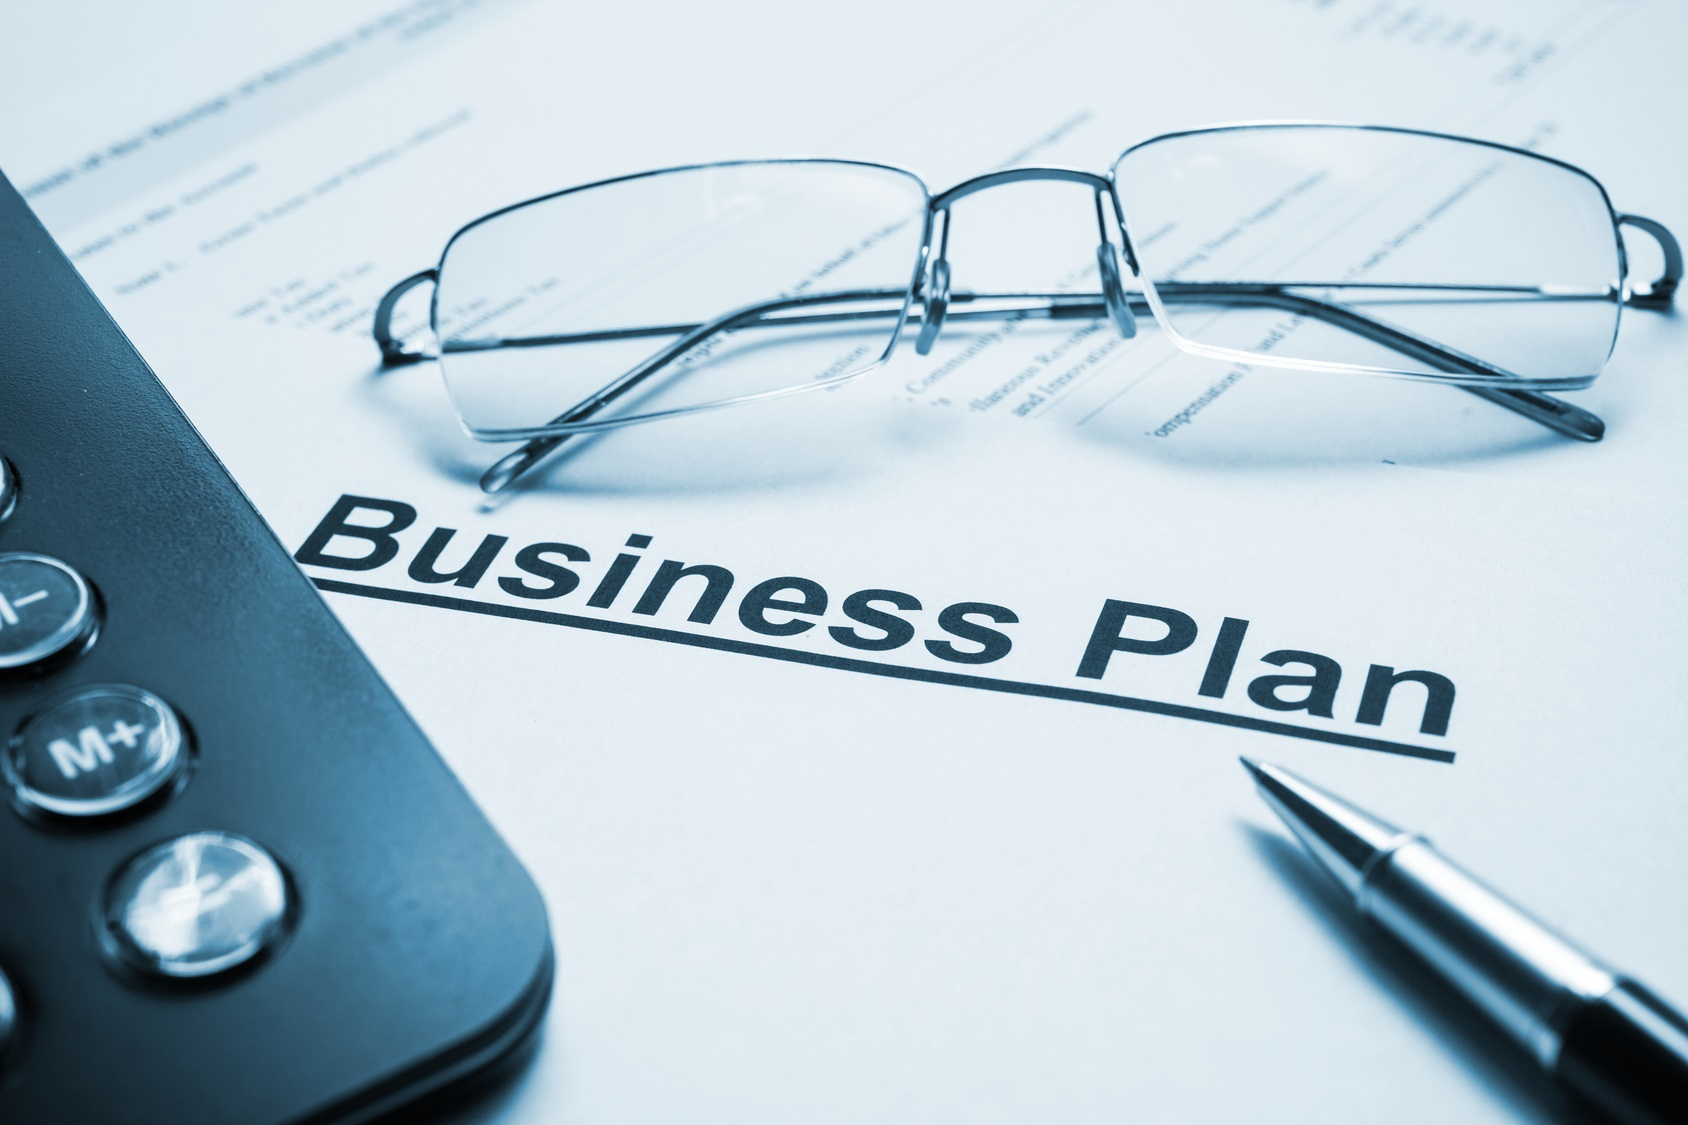 my business plan Get help from us on writing a business plan follow our step-by-step guide that gives advice on everything from defining a business to hiring staff  how will they benefit my business and help me to achieve my goals writing it all down when you write your business plan, remember to be clear, realistic and concise.